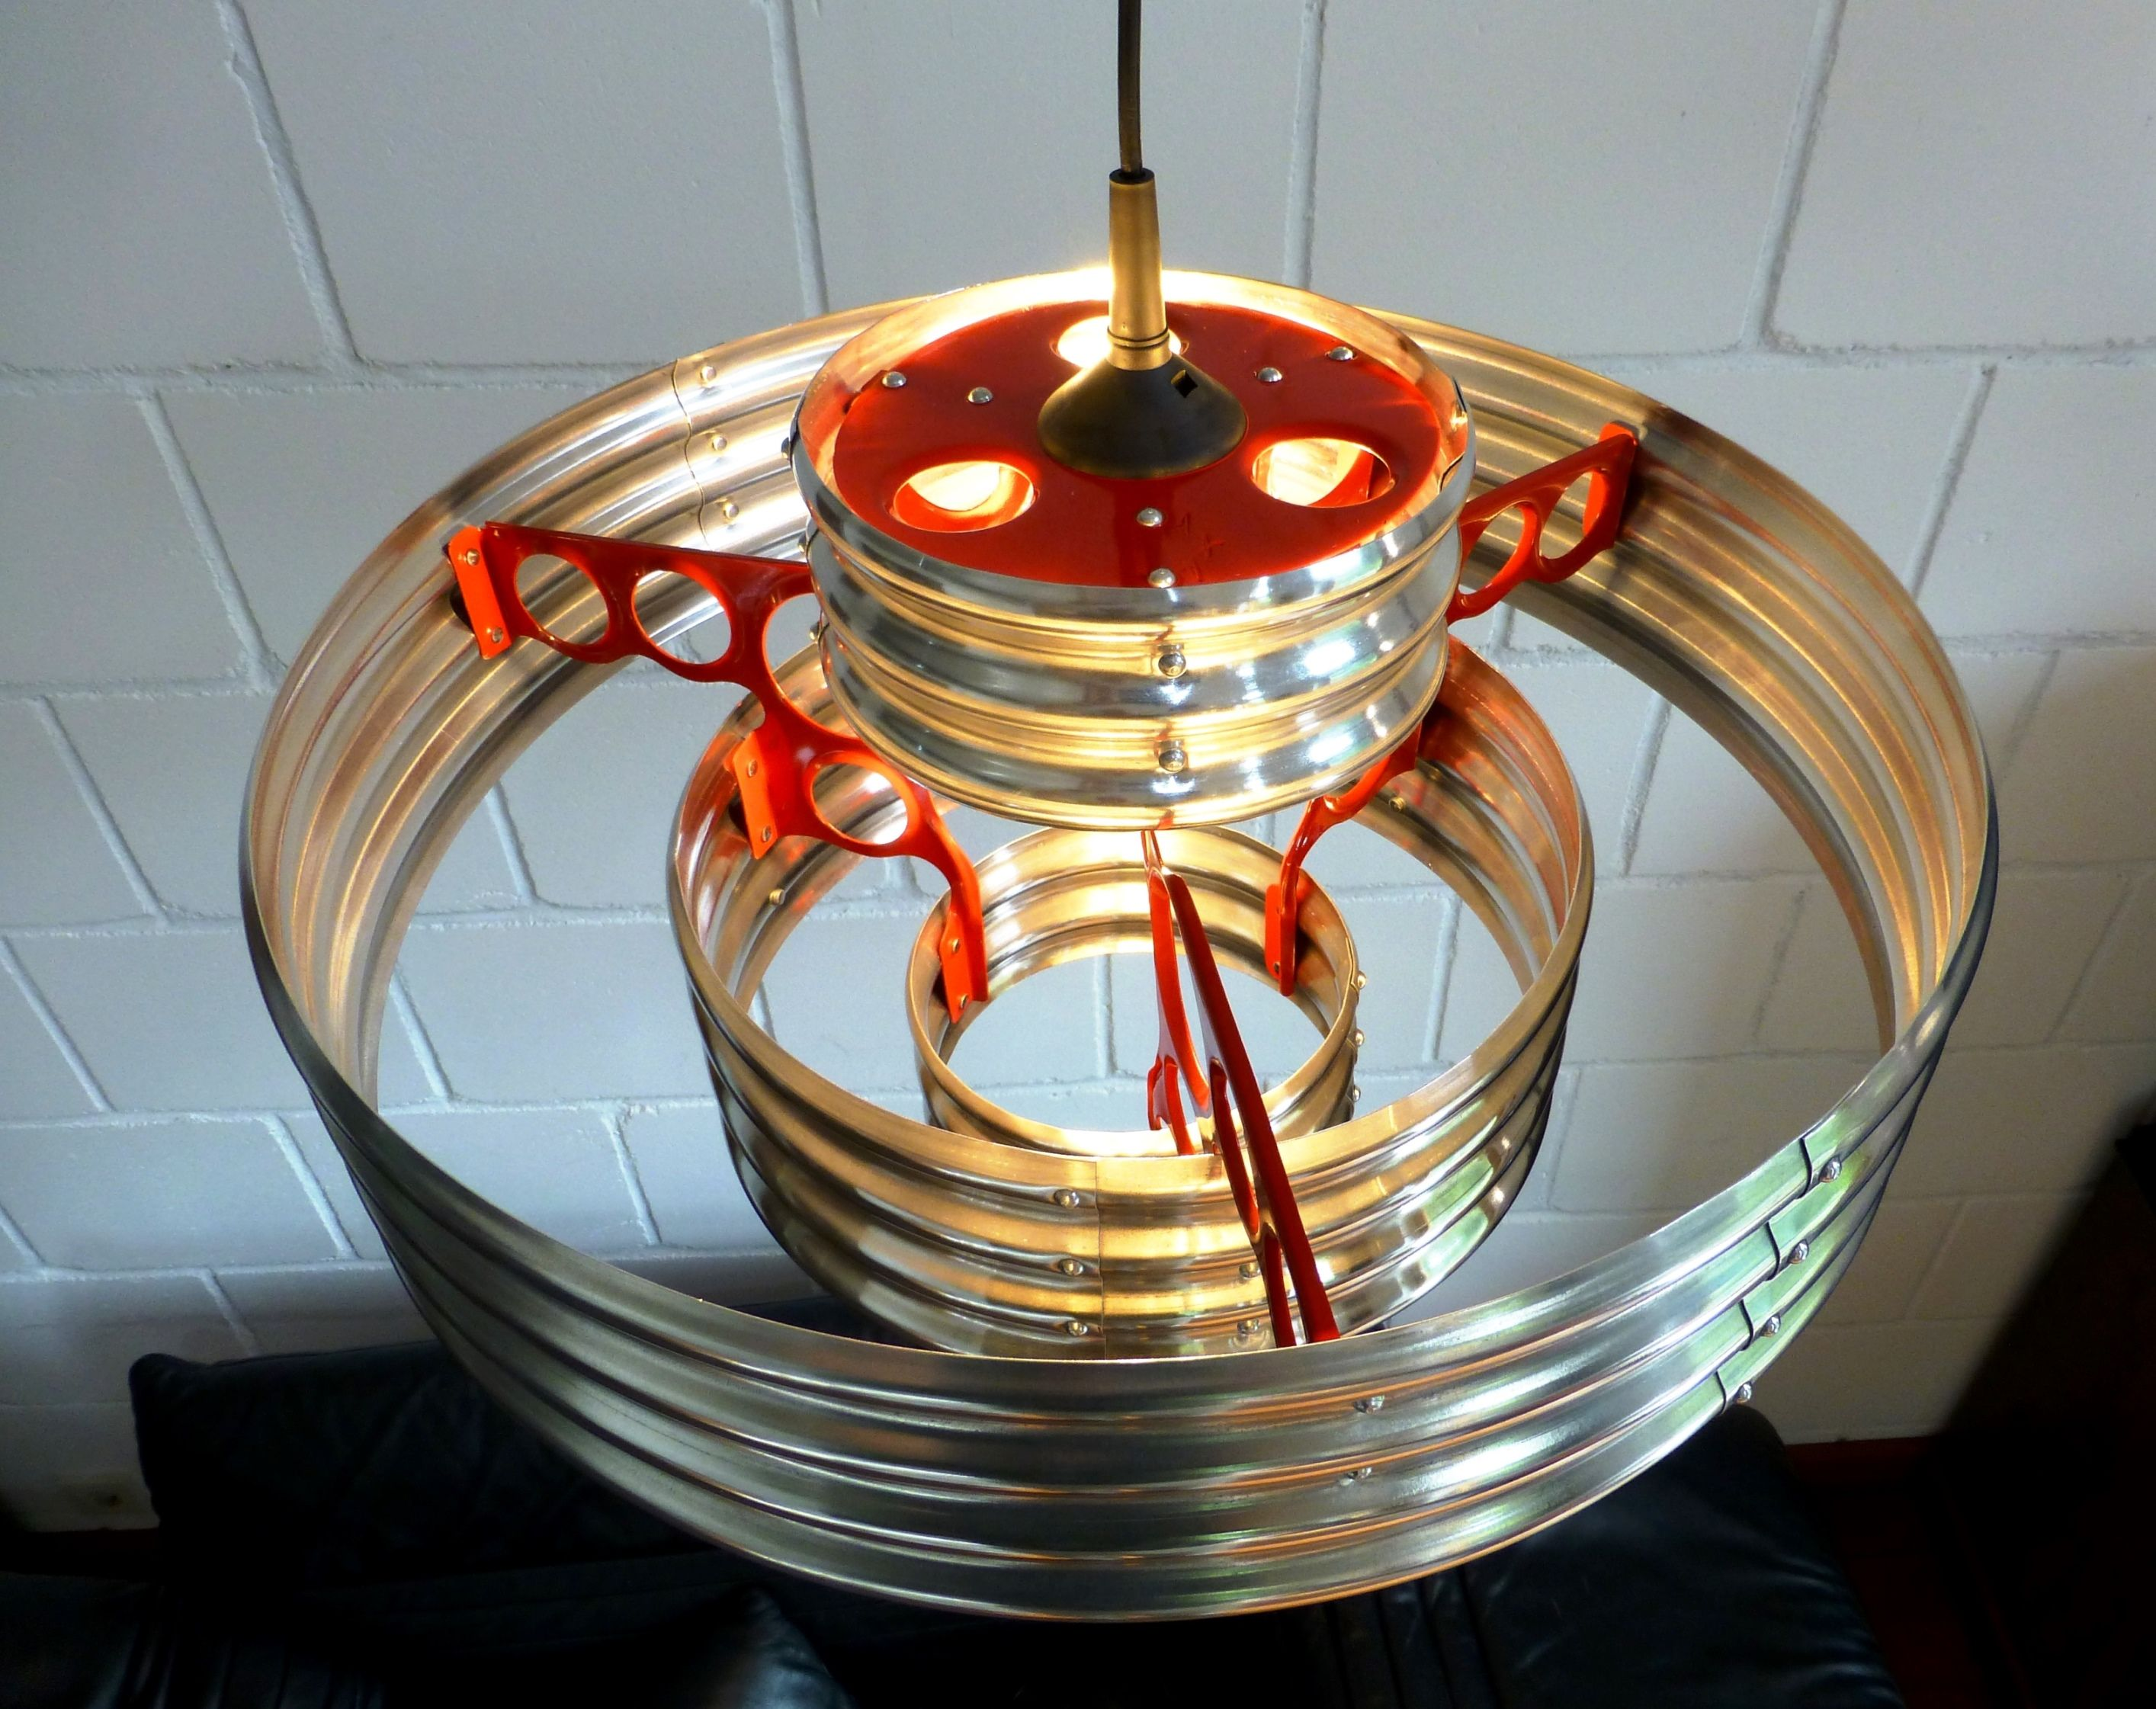 corrugated metal pendant lamp, view from upside. Design: AERO-1946